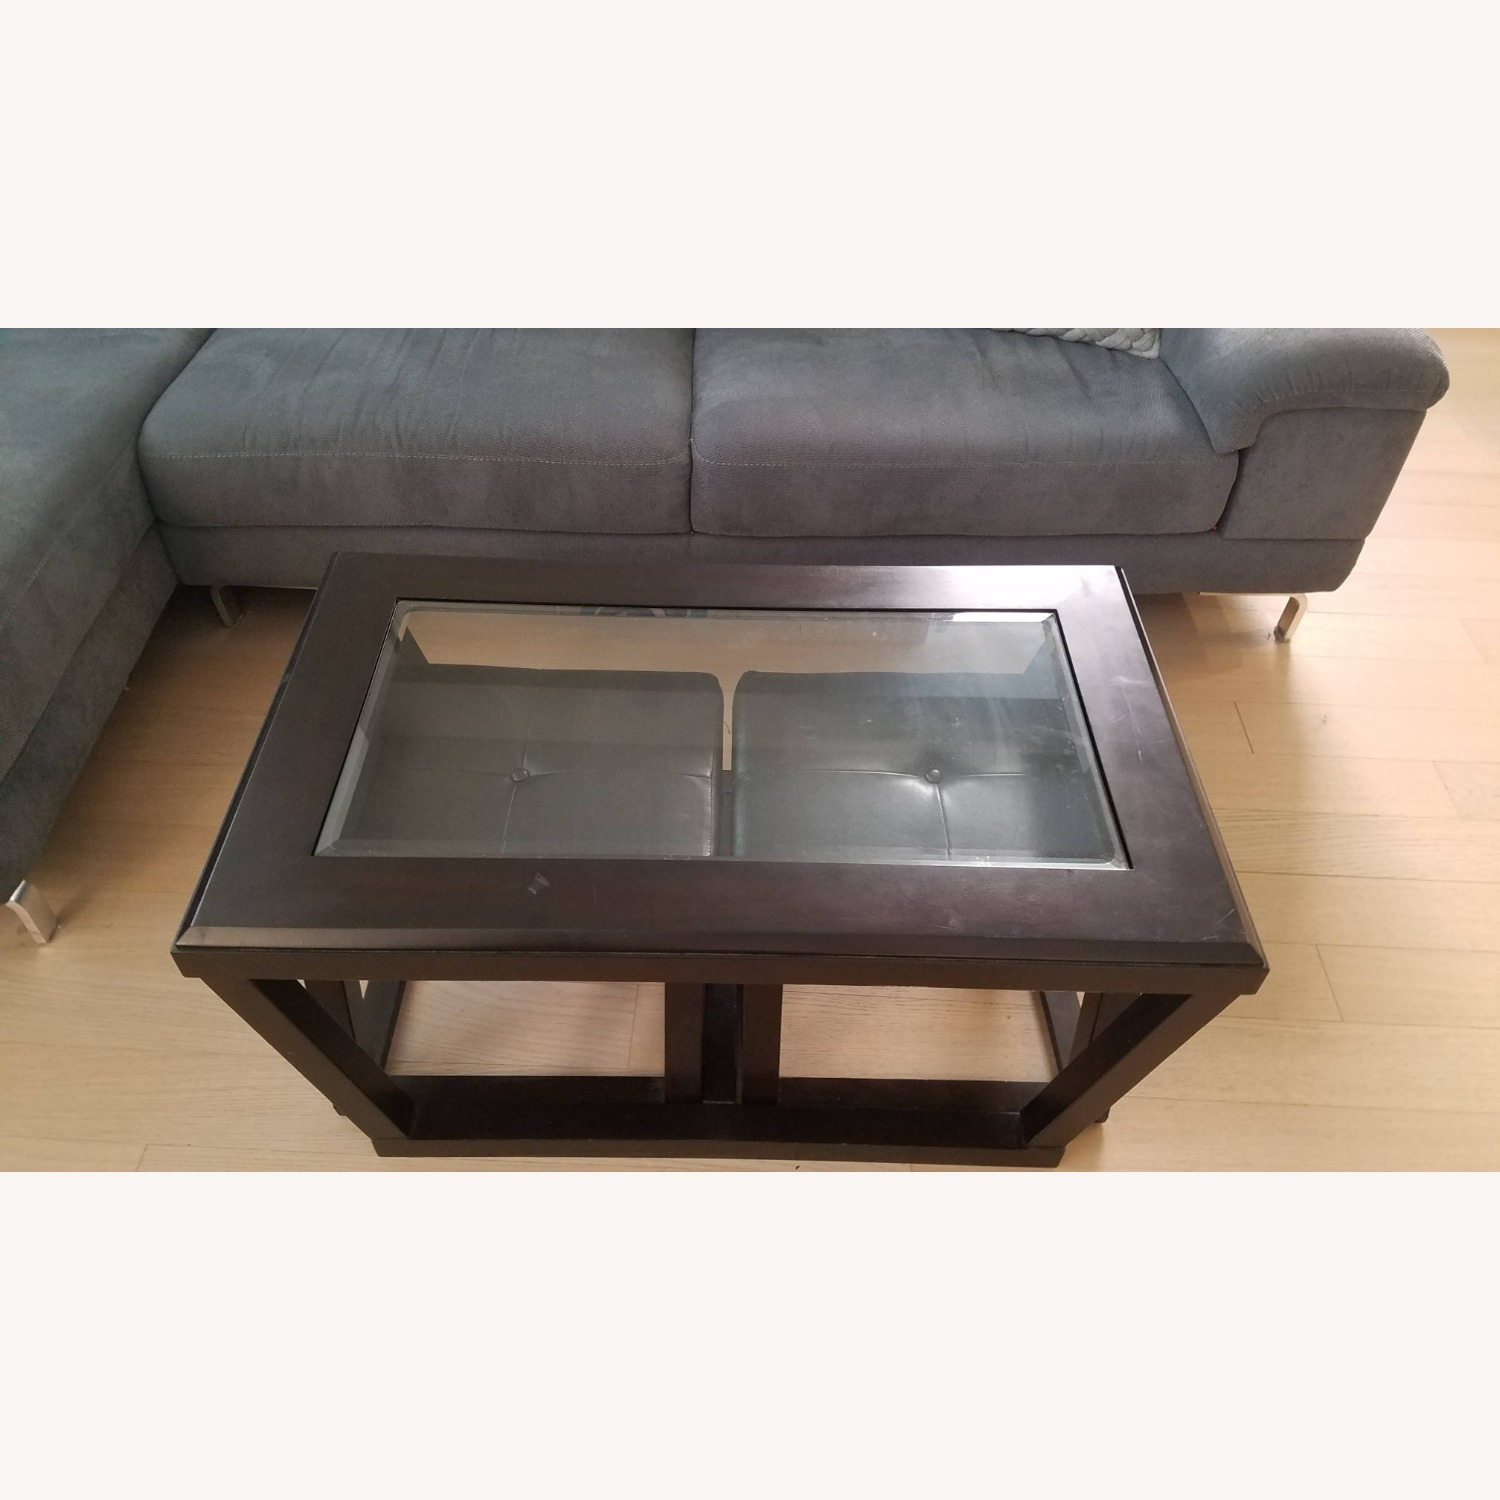 Black Wood and Glass Coffee Table with 2 Ottomans - image-1